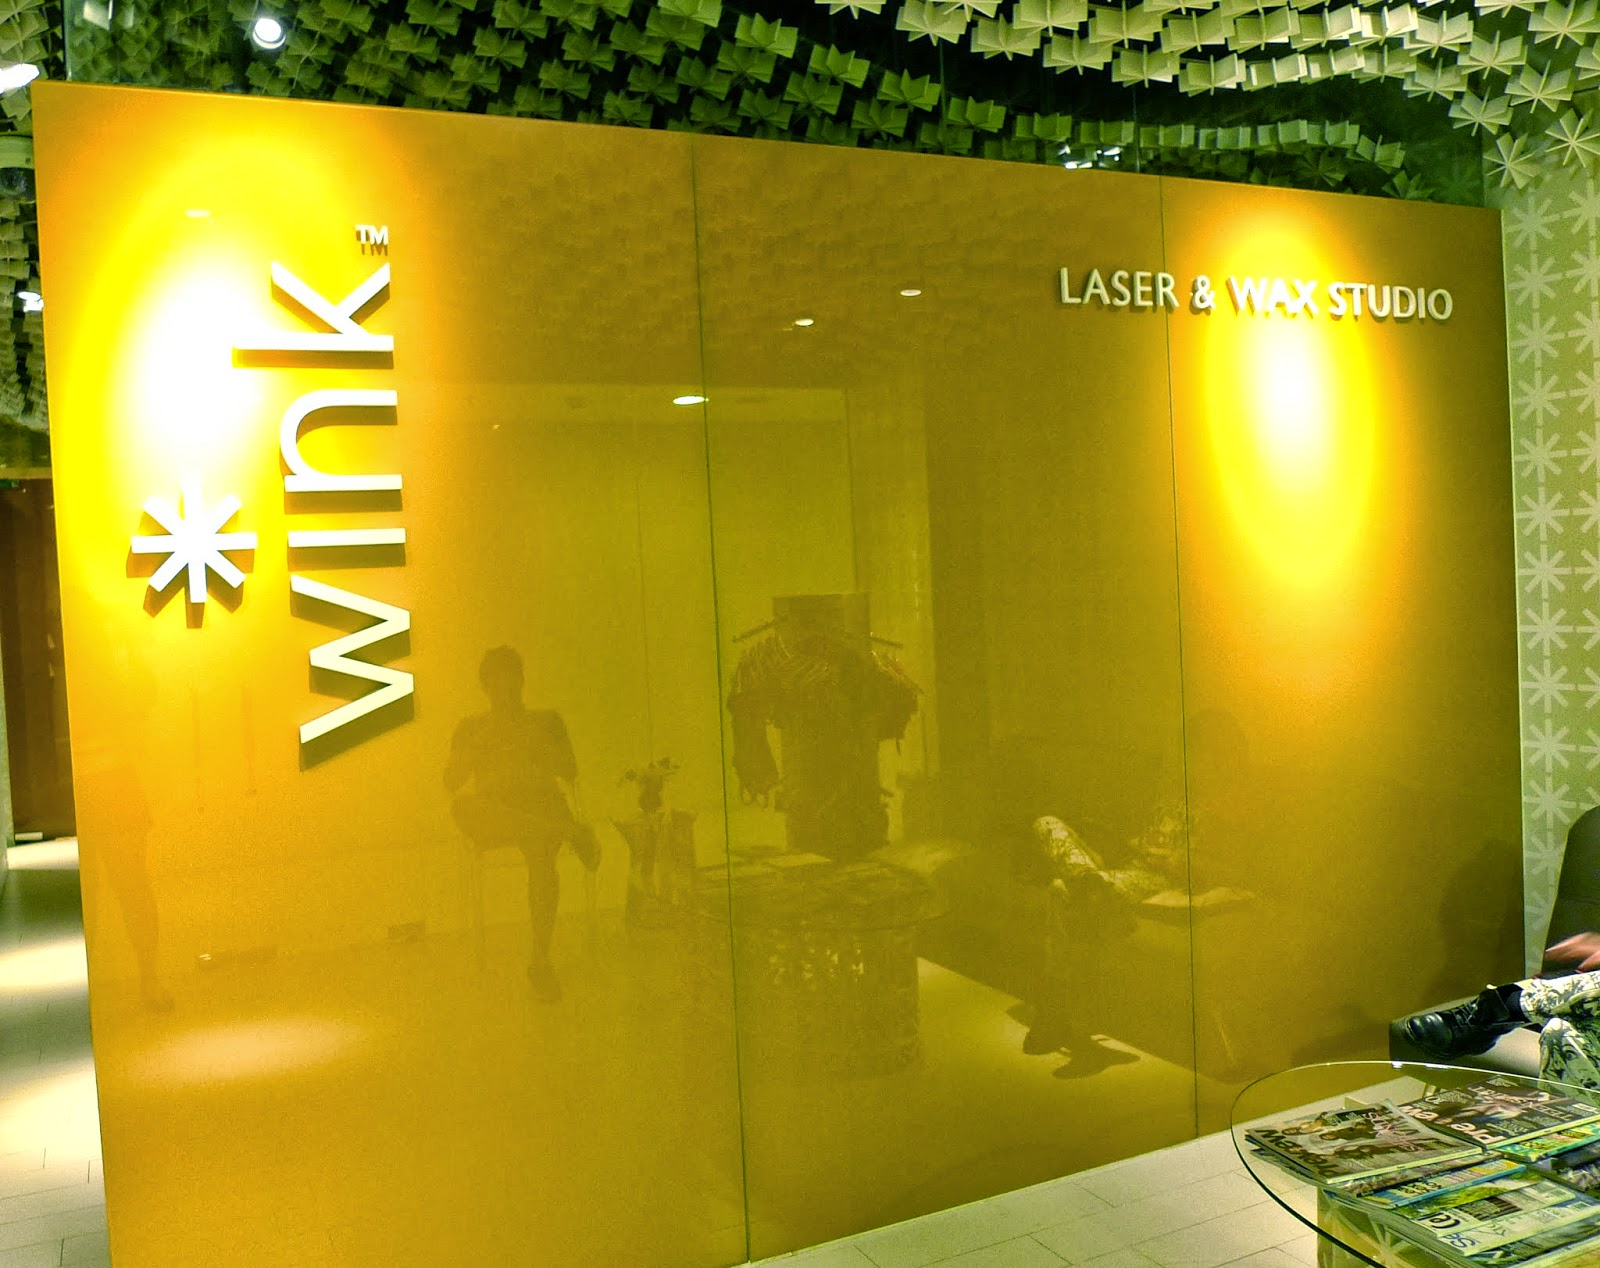 Brazilian Laser Hair Removal at Wink Laser and Wax Studio: Part I